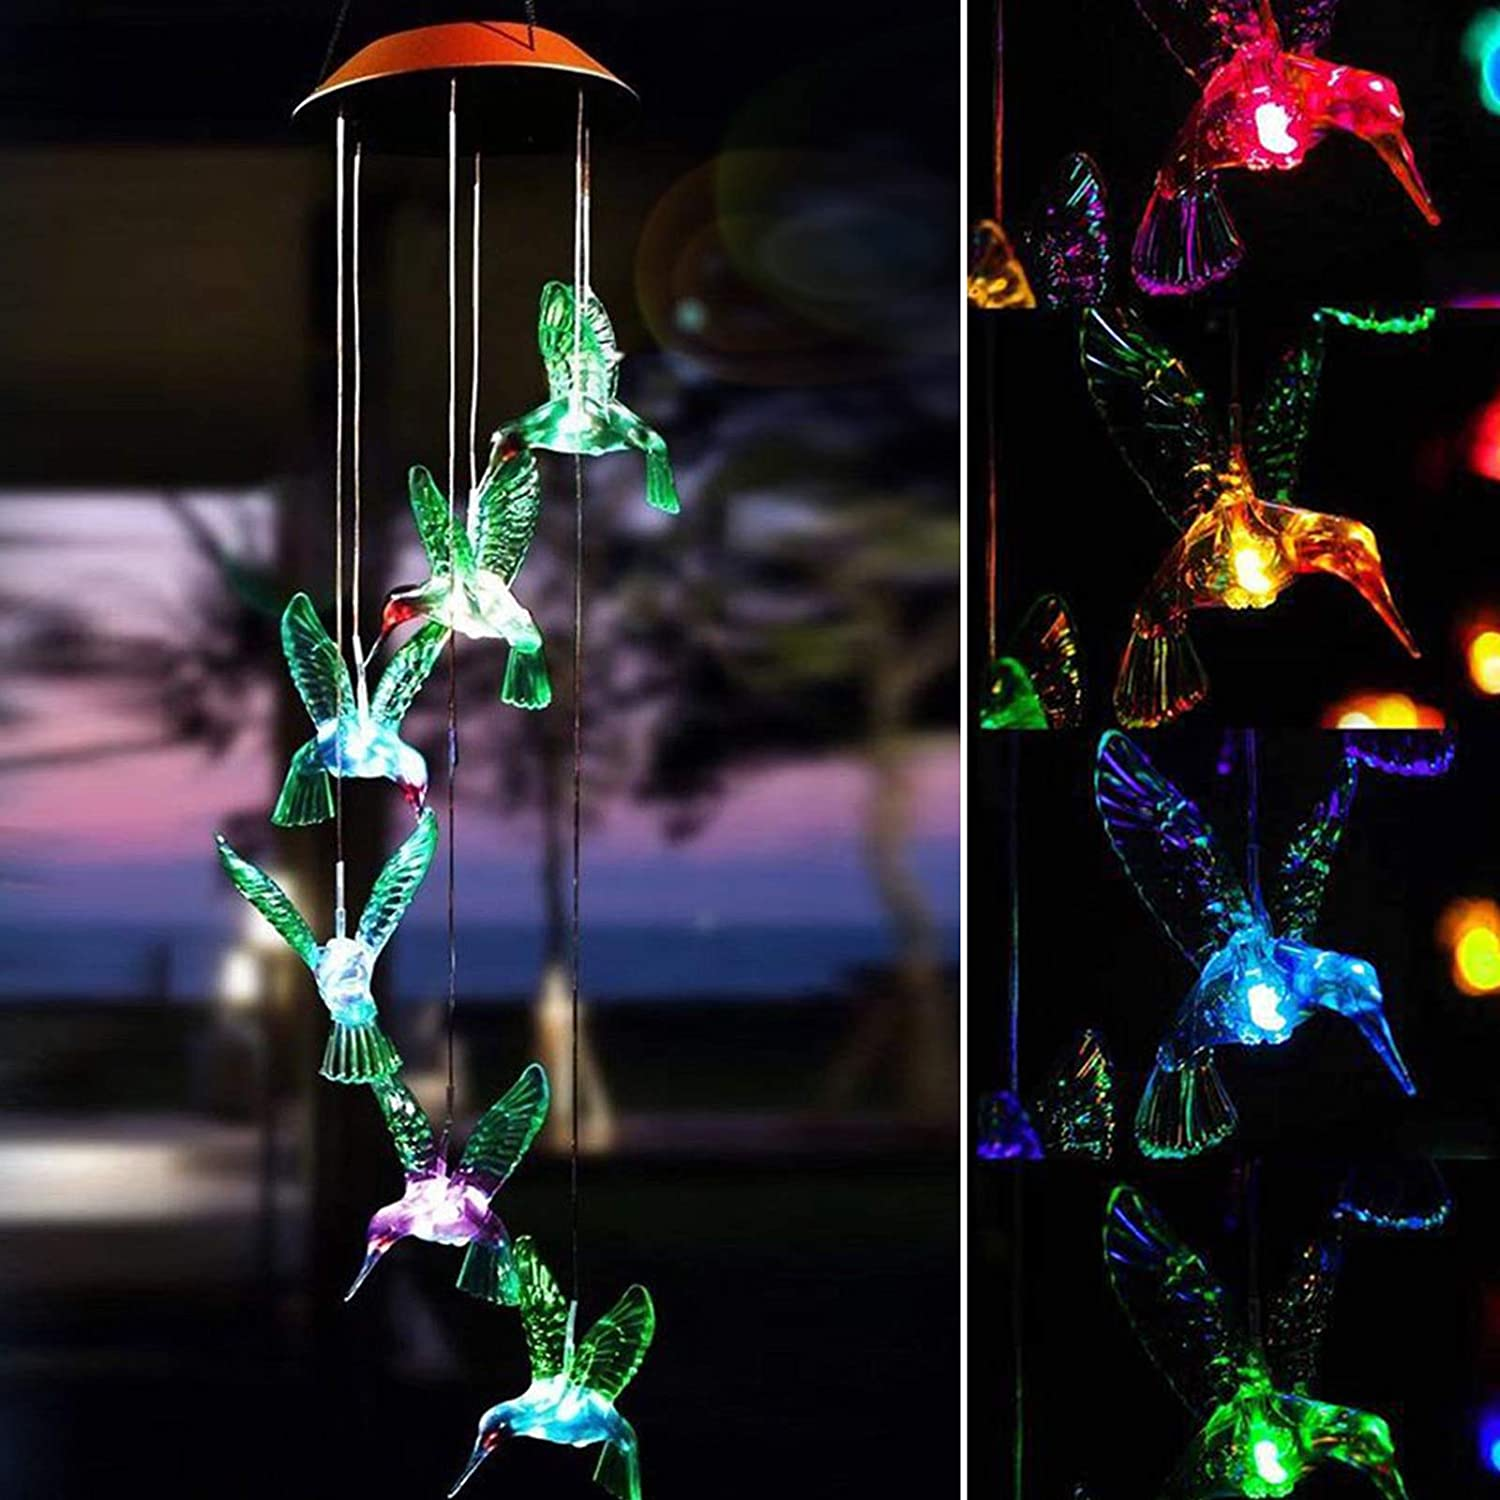 Hummingbird Solar Wind Chimes, Color-Changing Outdoor Waterproof LED Wind Chime Solar Powered Colorful Light for Home/Party/Yard/Garden Decoration